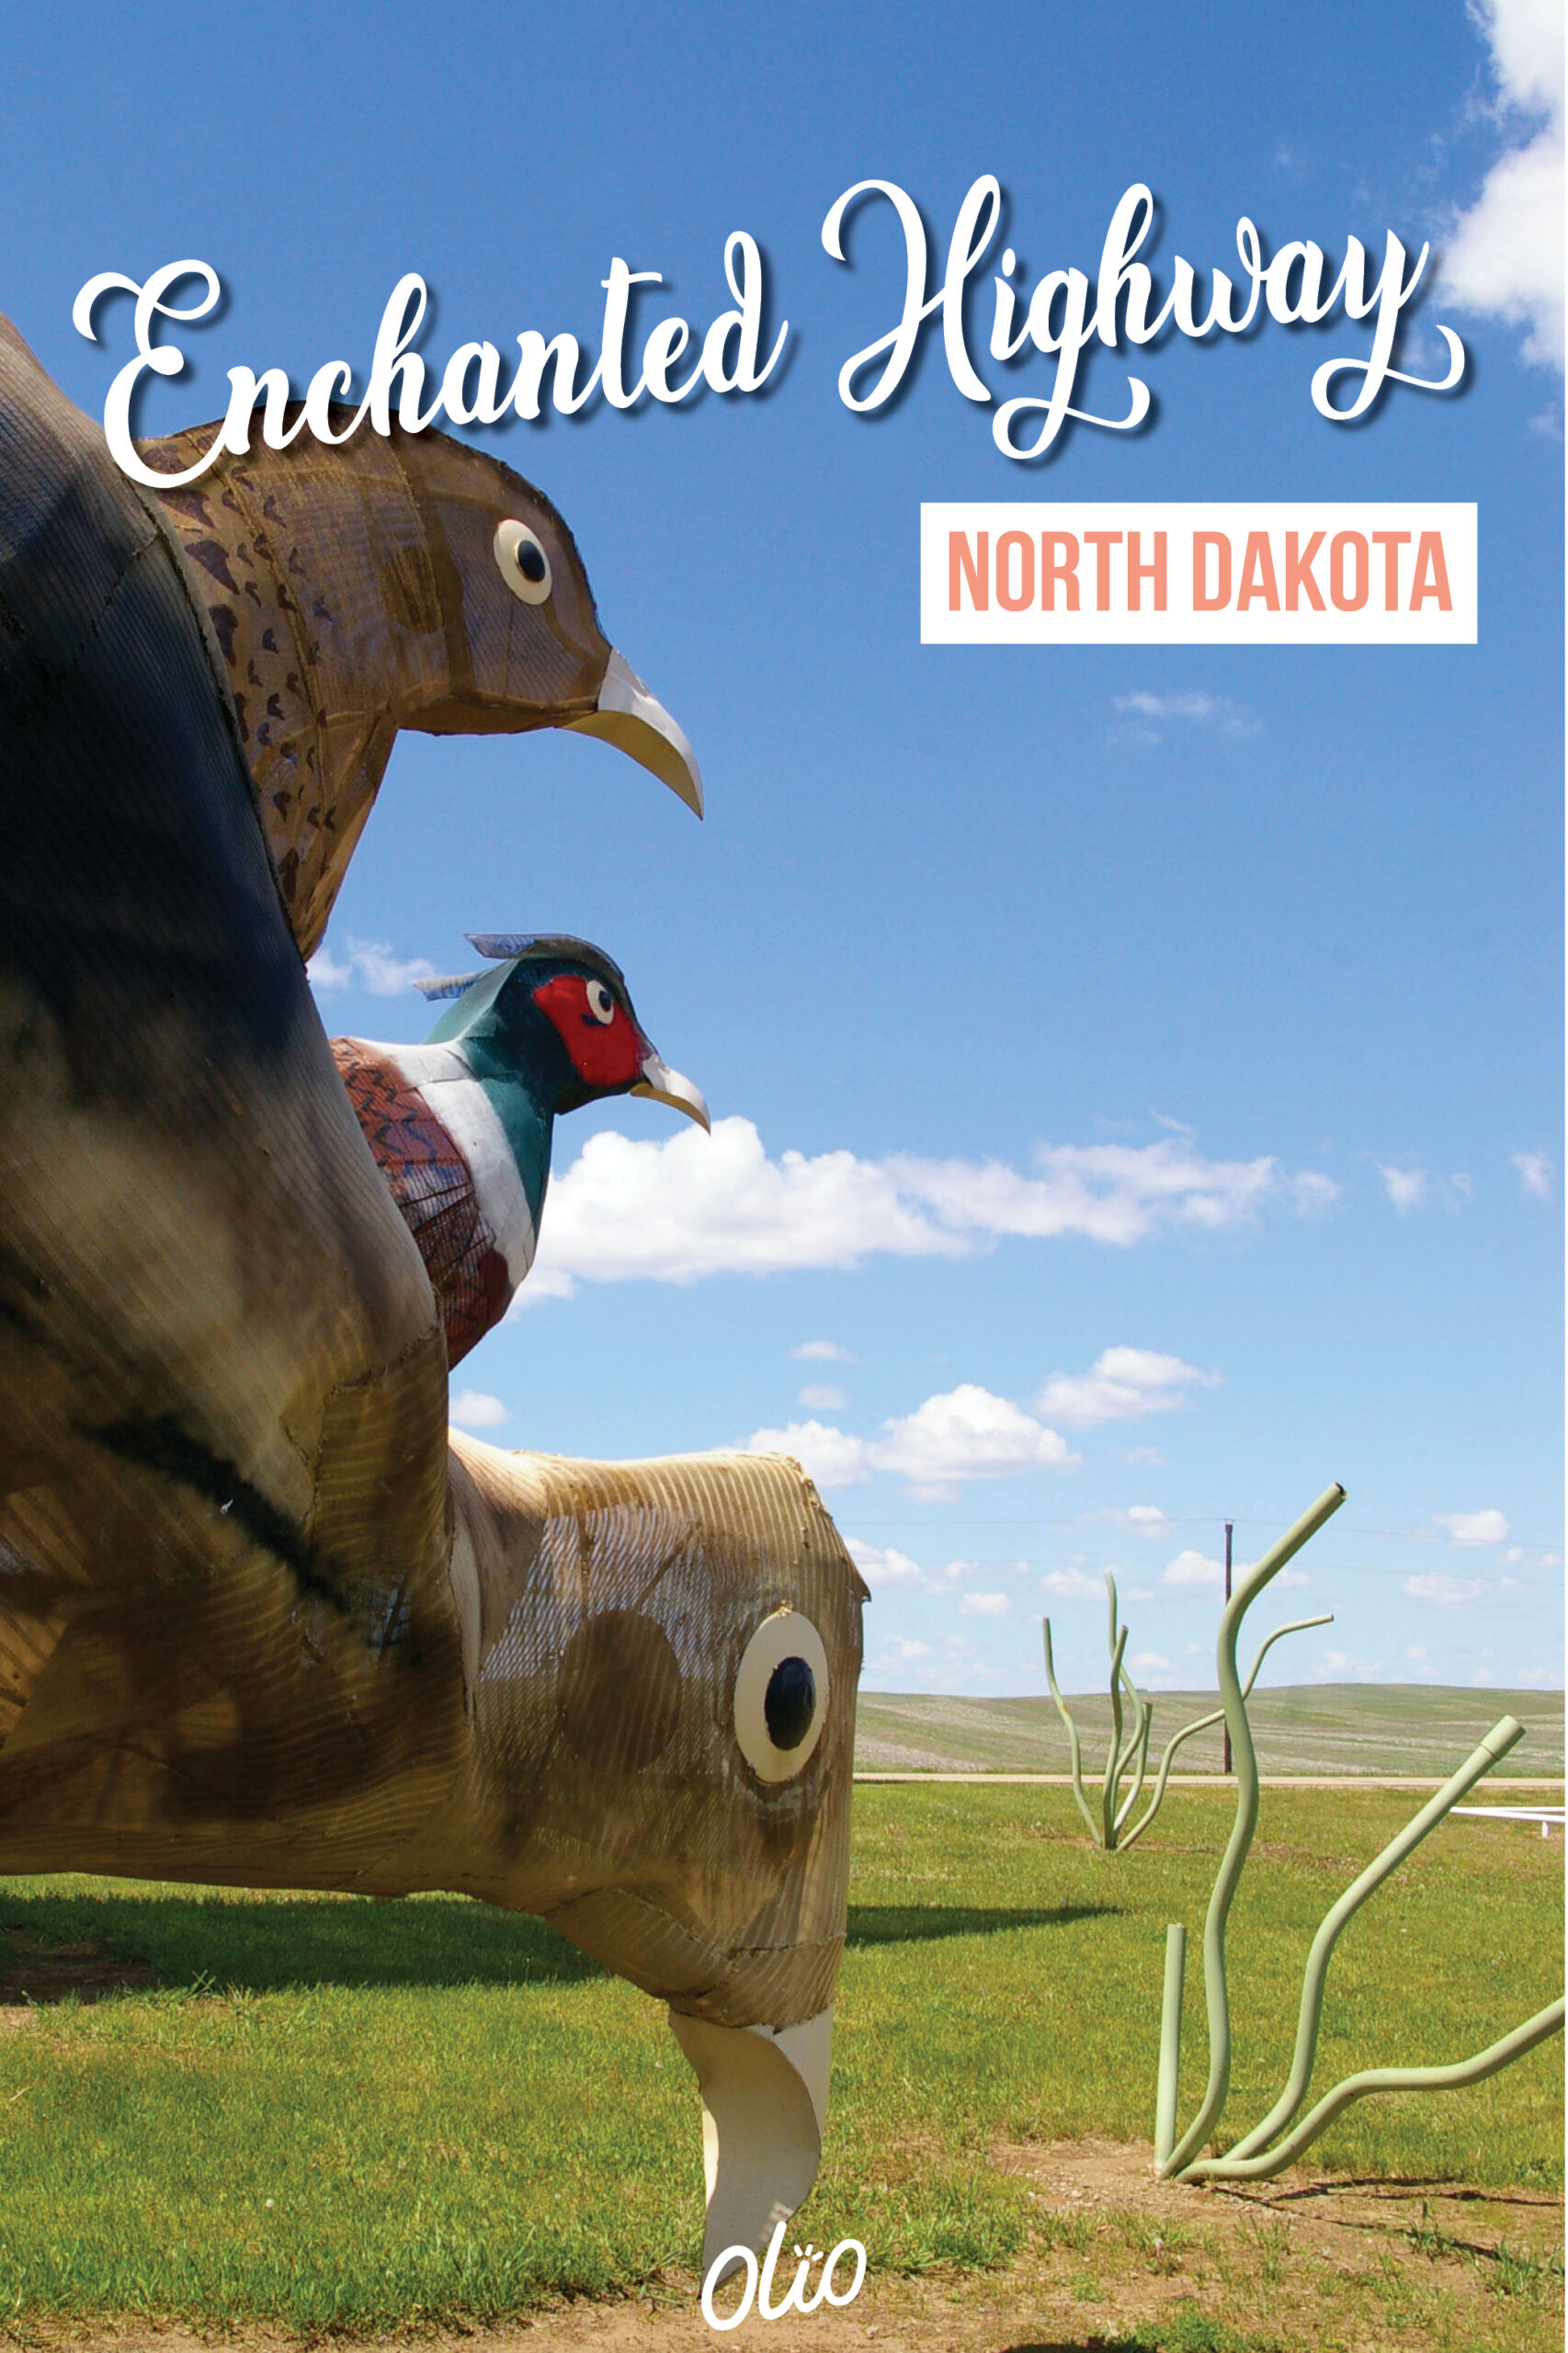 No North Dakota road trip would be complete without a drive along the Enchanted Highway! Experience some of the world's largest scrap metal sculptures and experience a series of roadside attractions you have to see to believe. You'll want to add this drive to your travel bucket list ASAP!